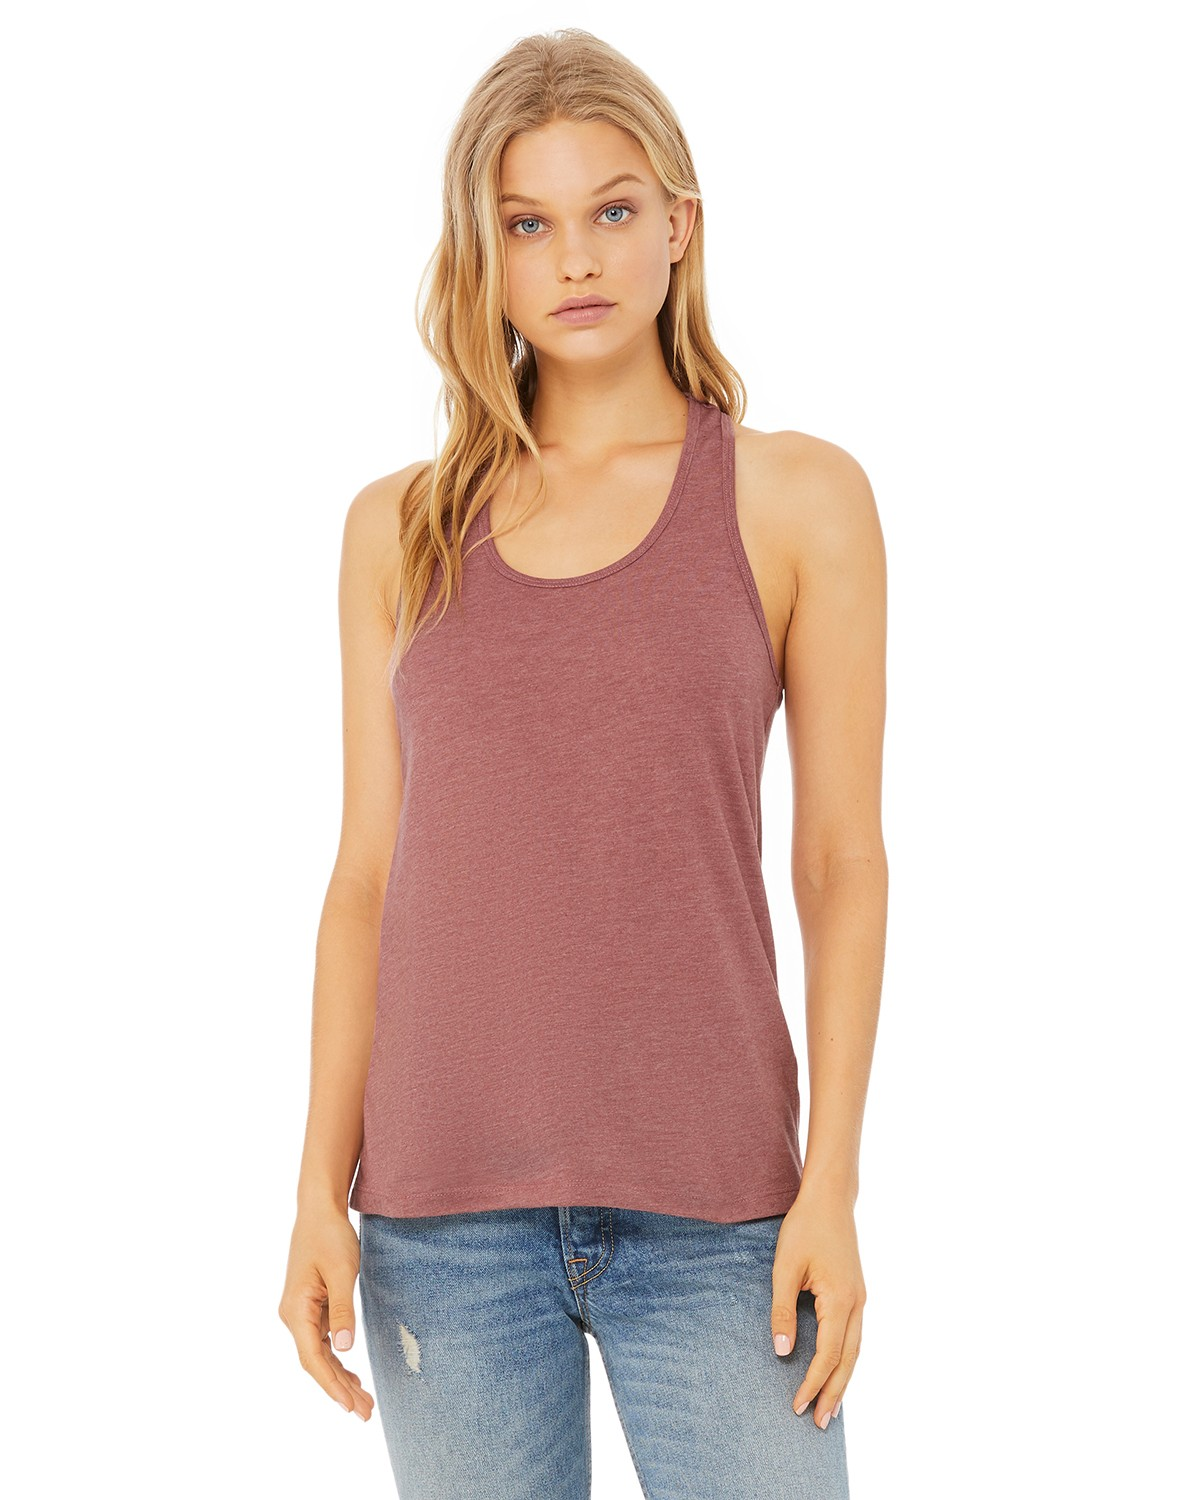 B6008 Bella + Canvas HEATHER MAUVE